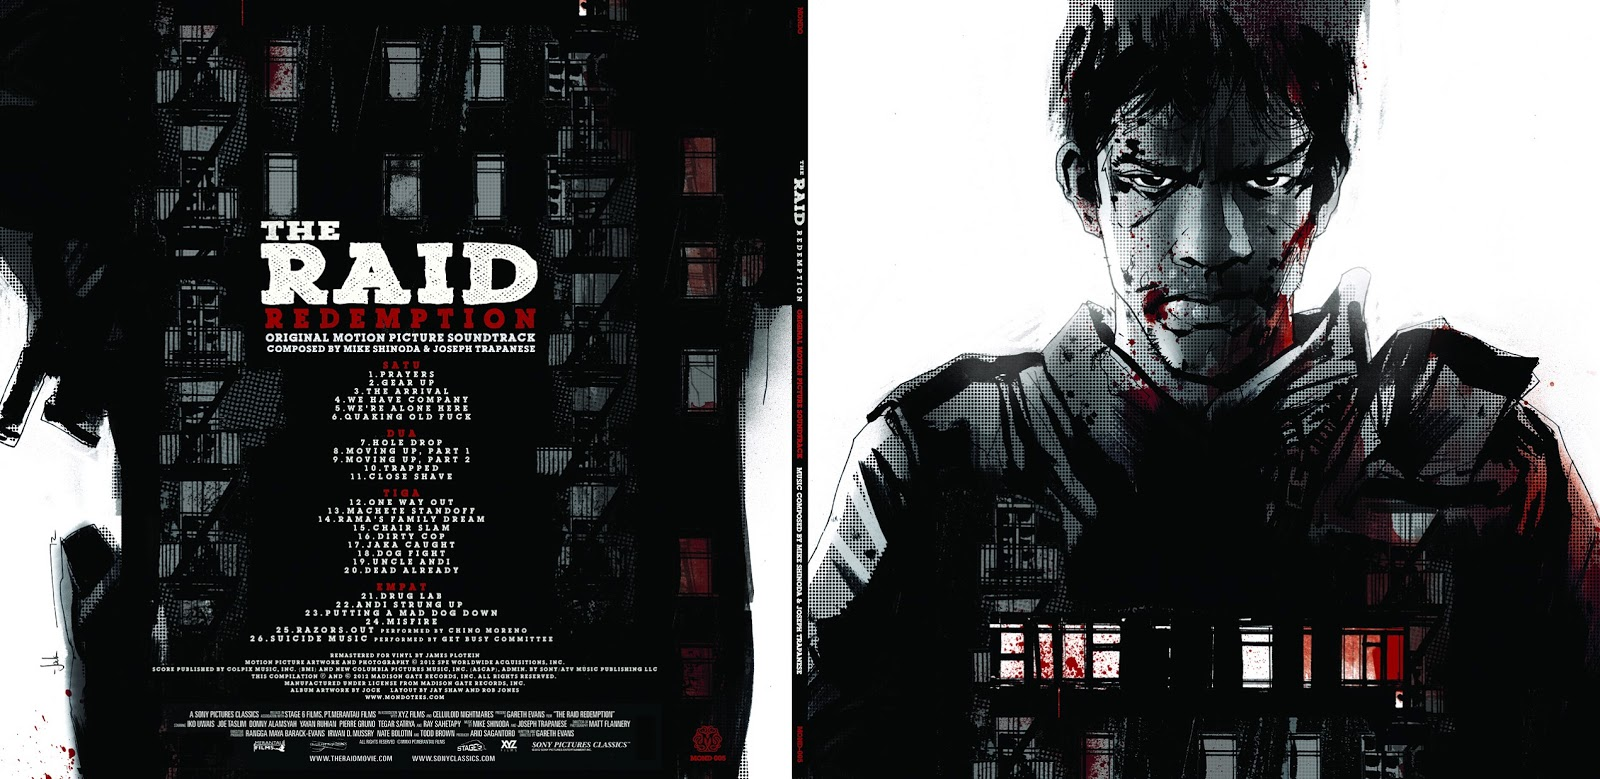 mondo_the-raid_gatefold_exterior